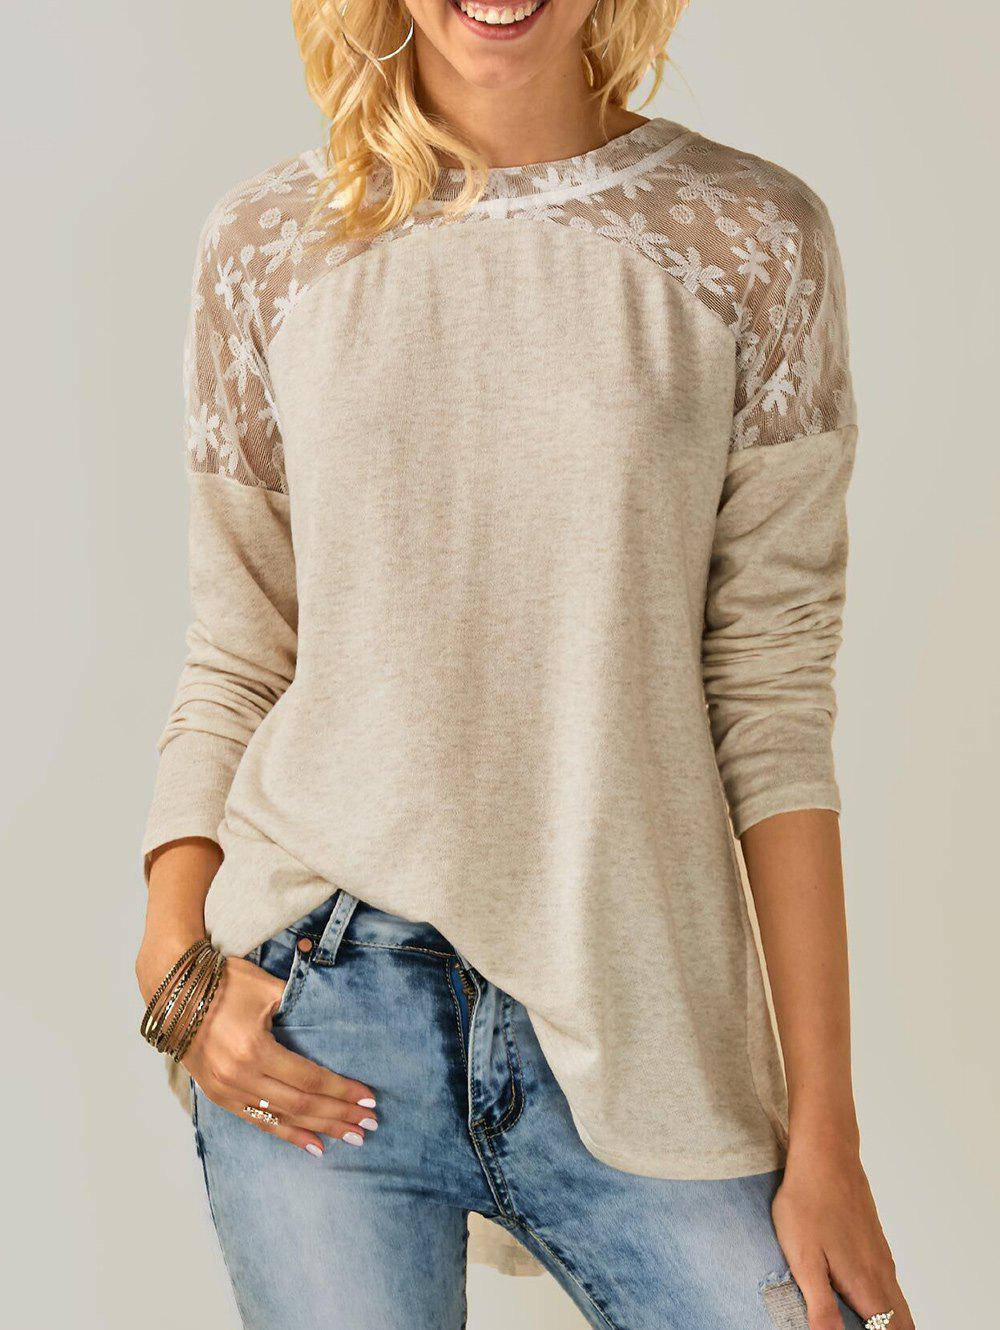 Shops Back Bowknot Embellished Lace Panel T-shirt